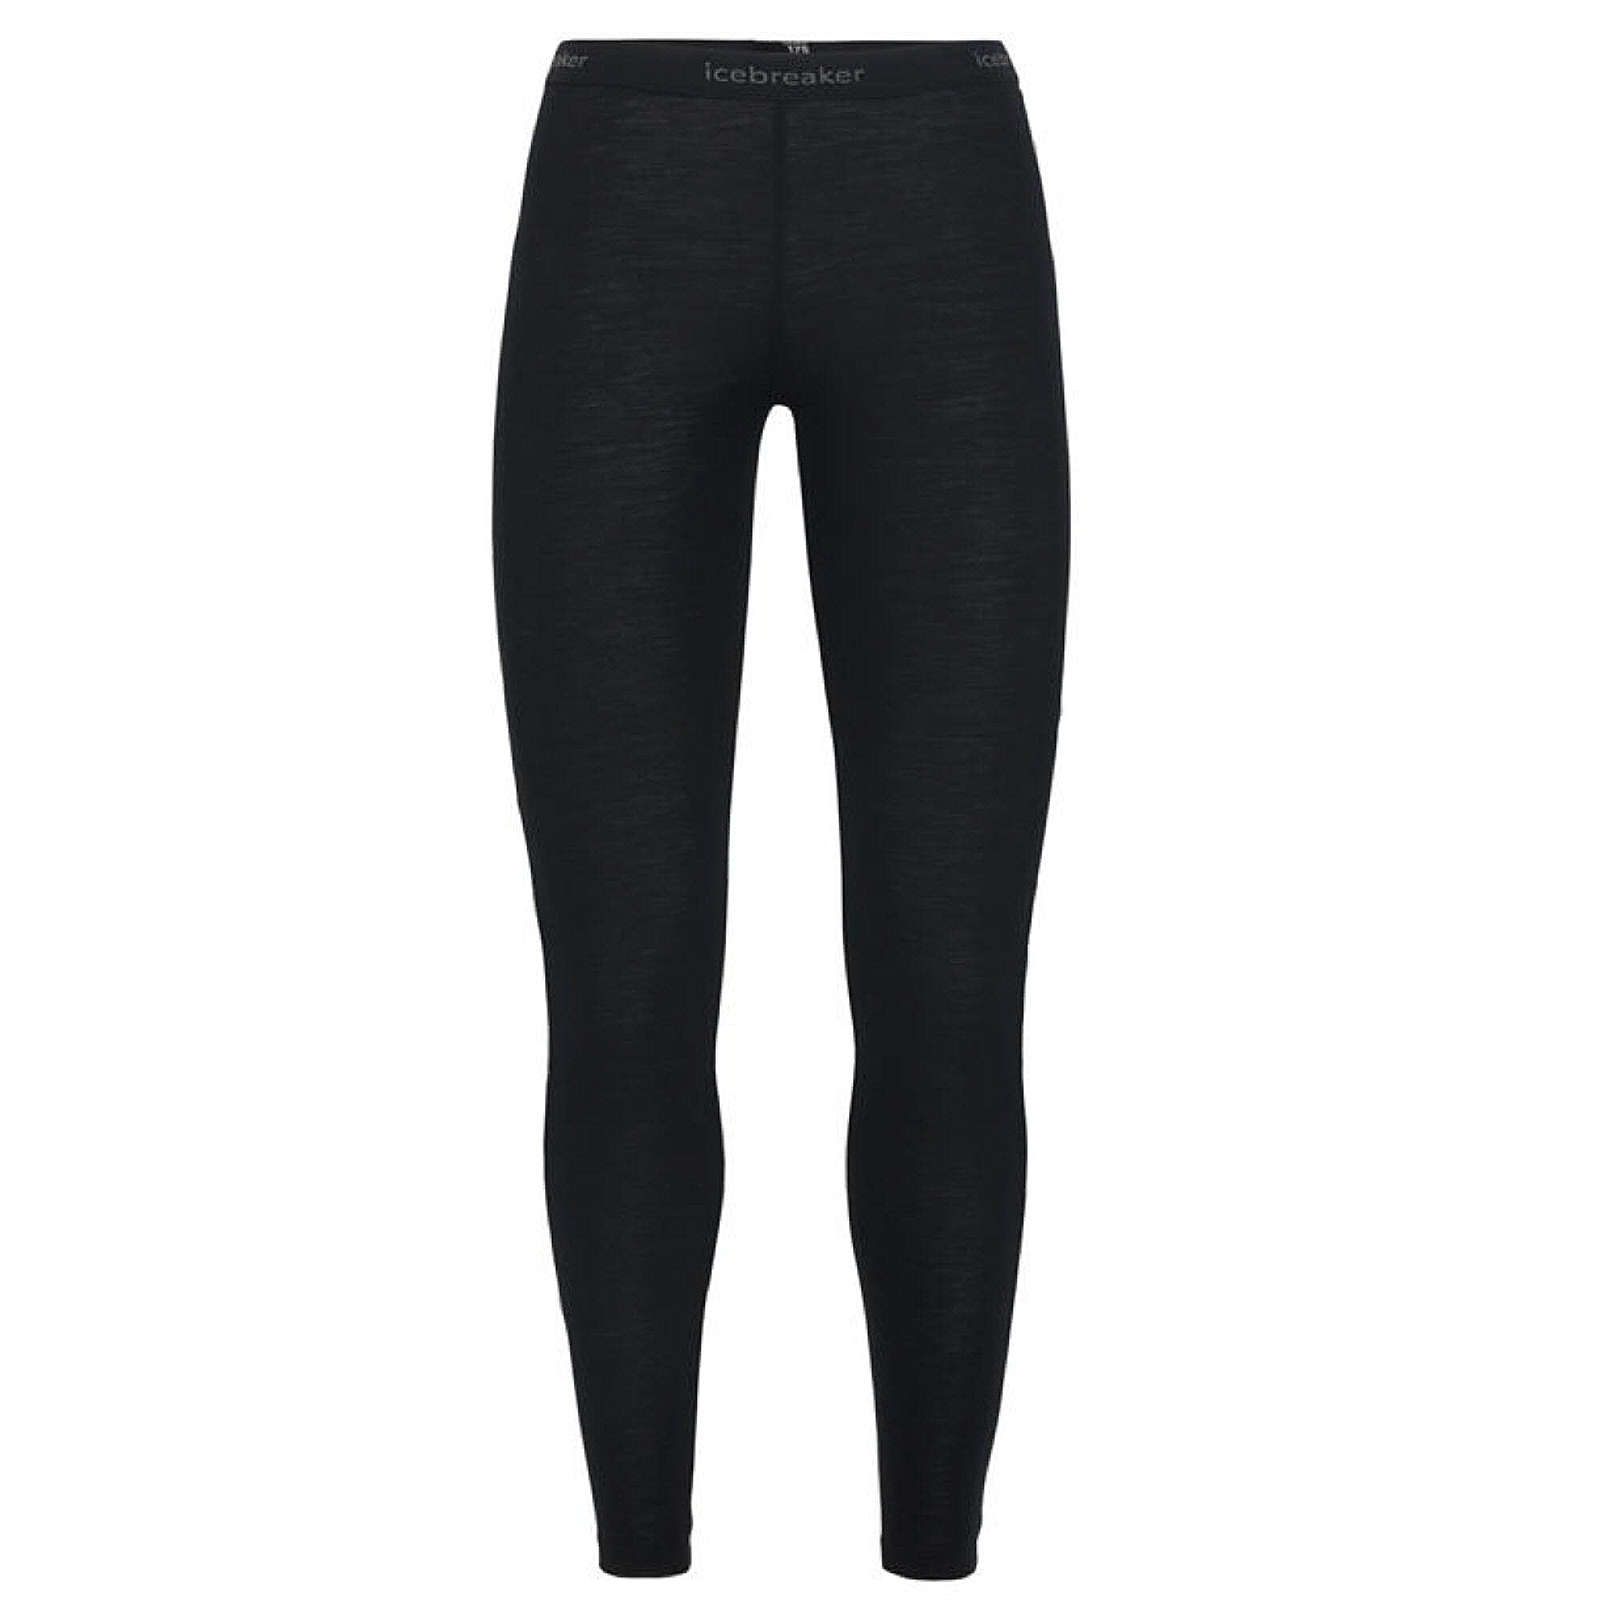 Icebreaker Leggings BF200 Legging Outdoorhosen schwarz Damen Gr. 40